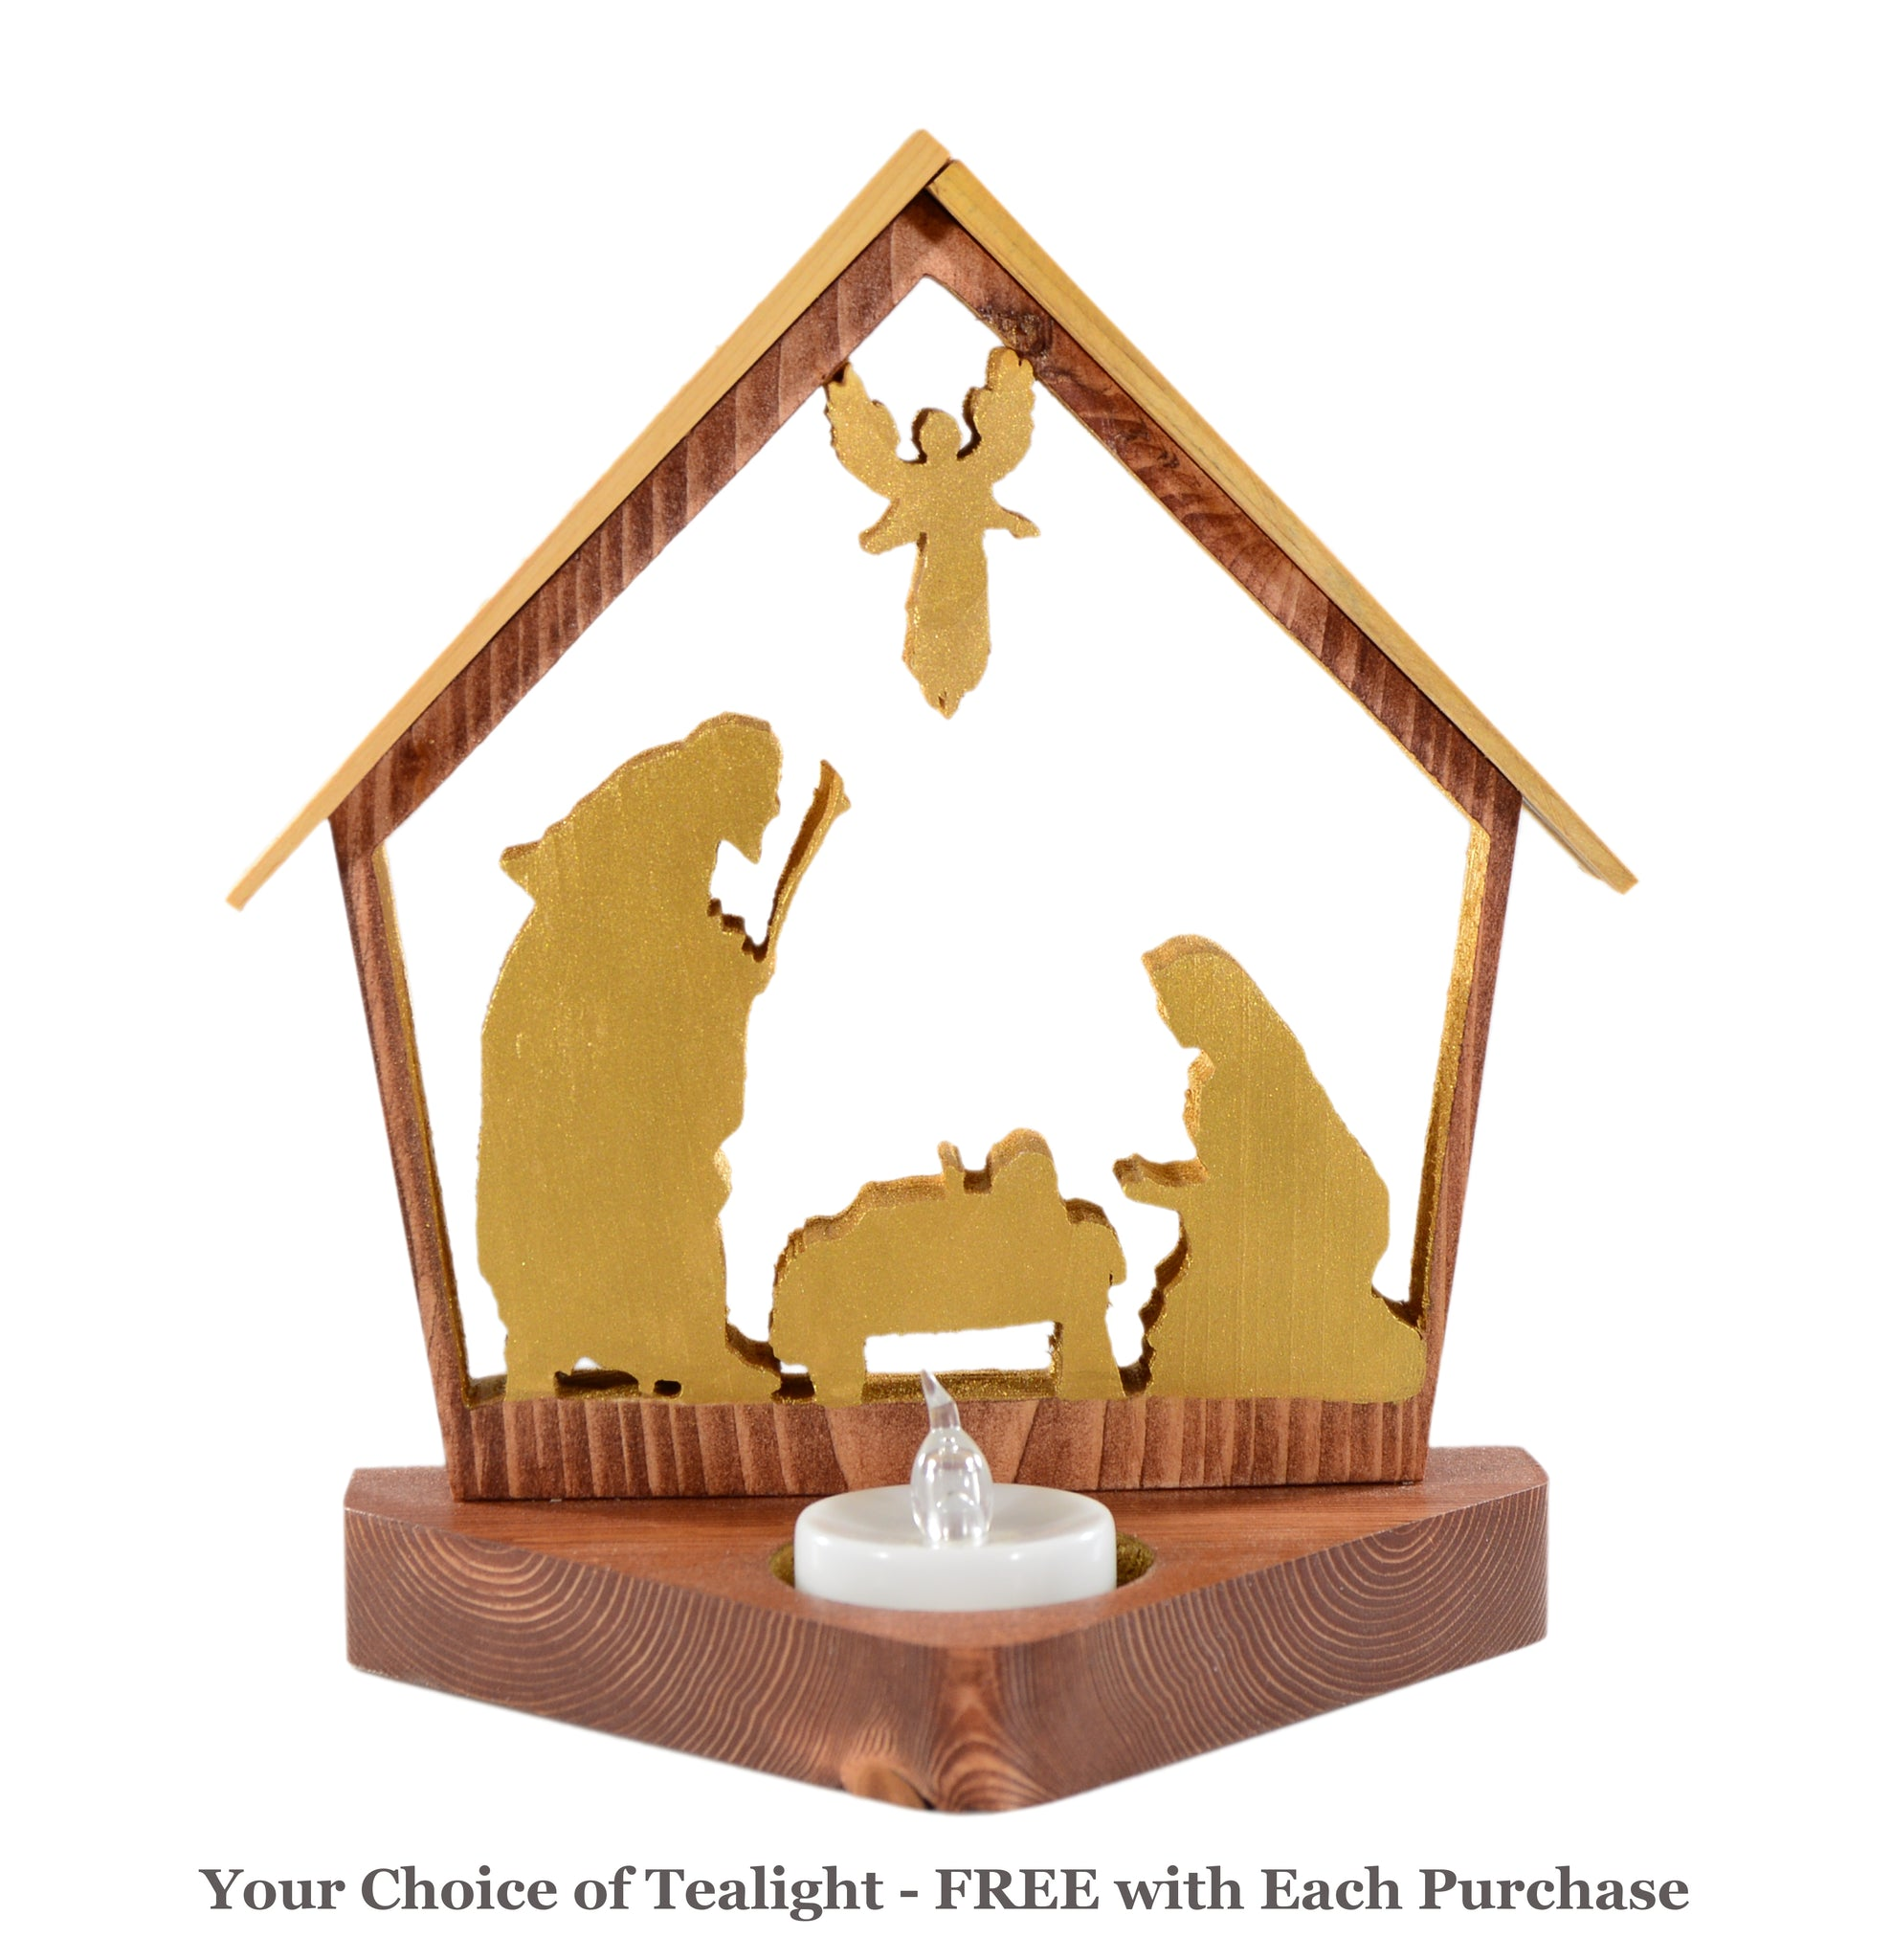 NATIVITY SCENE 3pc Set Holiday Keepsake Tealight Candle Holders - Personalized Christmas Home Decor Gift